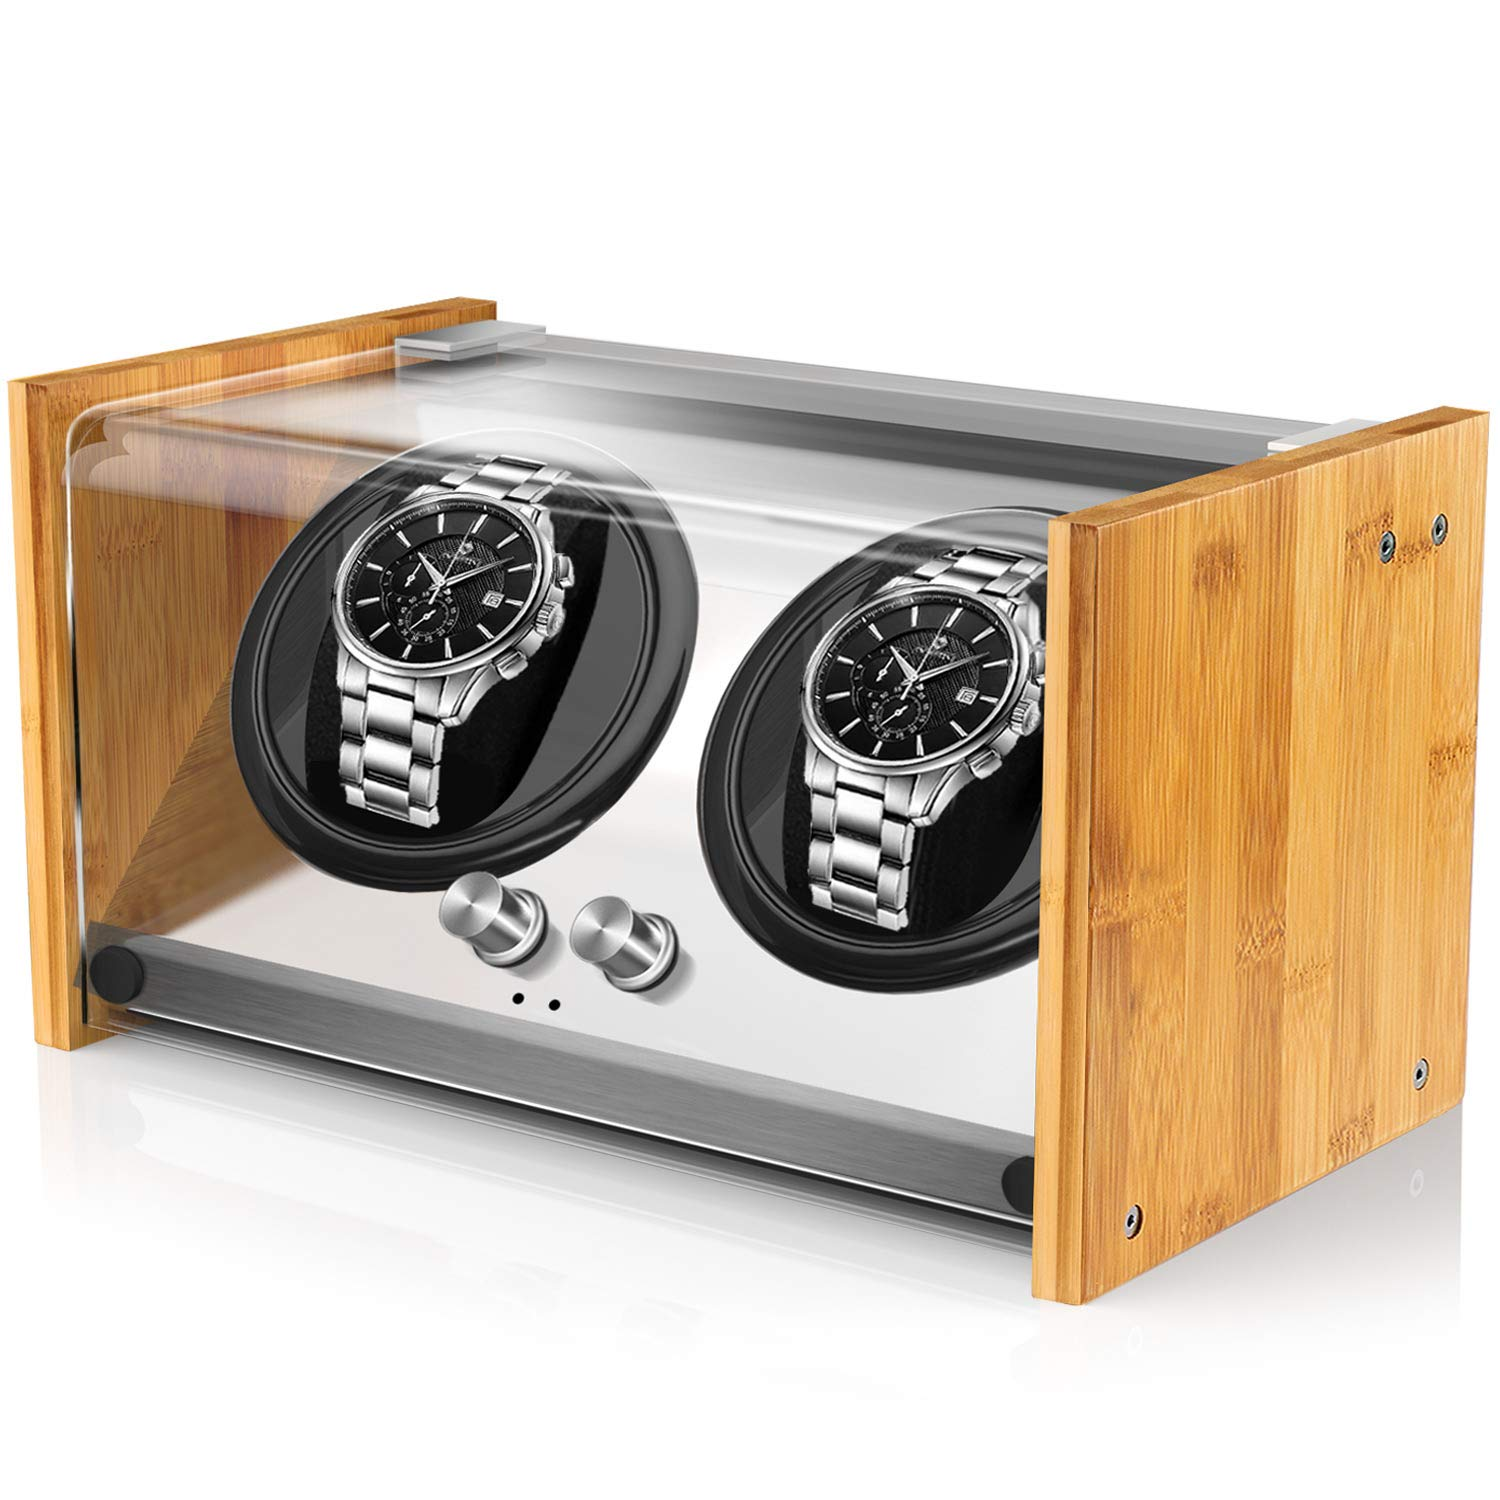 Watch Winders for Automatic Watches, Spacious for Mid to Big Size Rolex Double Automatic Watch Winder, Super Quiet Japanese Motor, AC/Battery Powered Craftsmanship Bamboo Wood by Watch Winder Smith by Watch Winder Smith